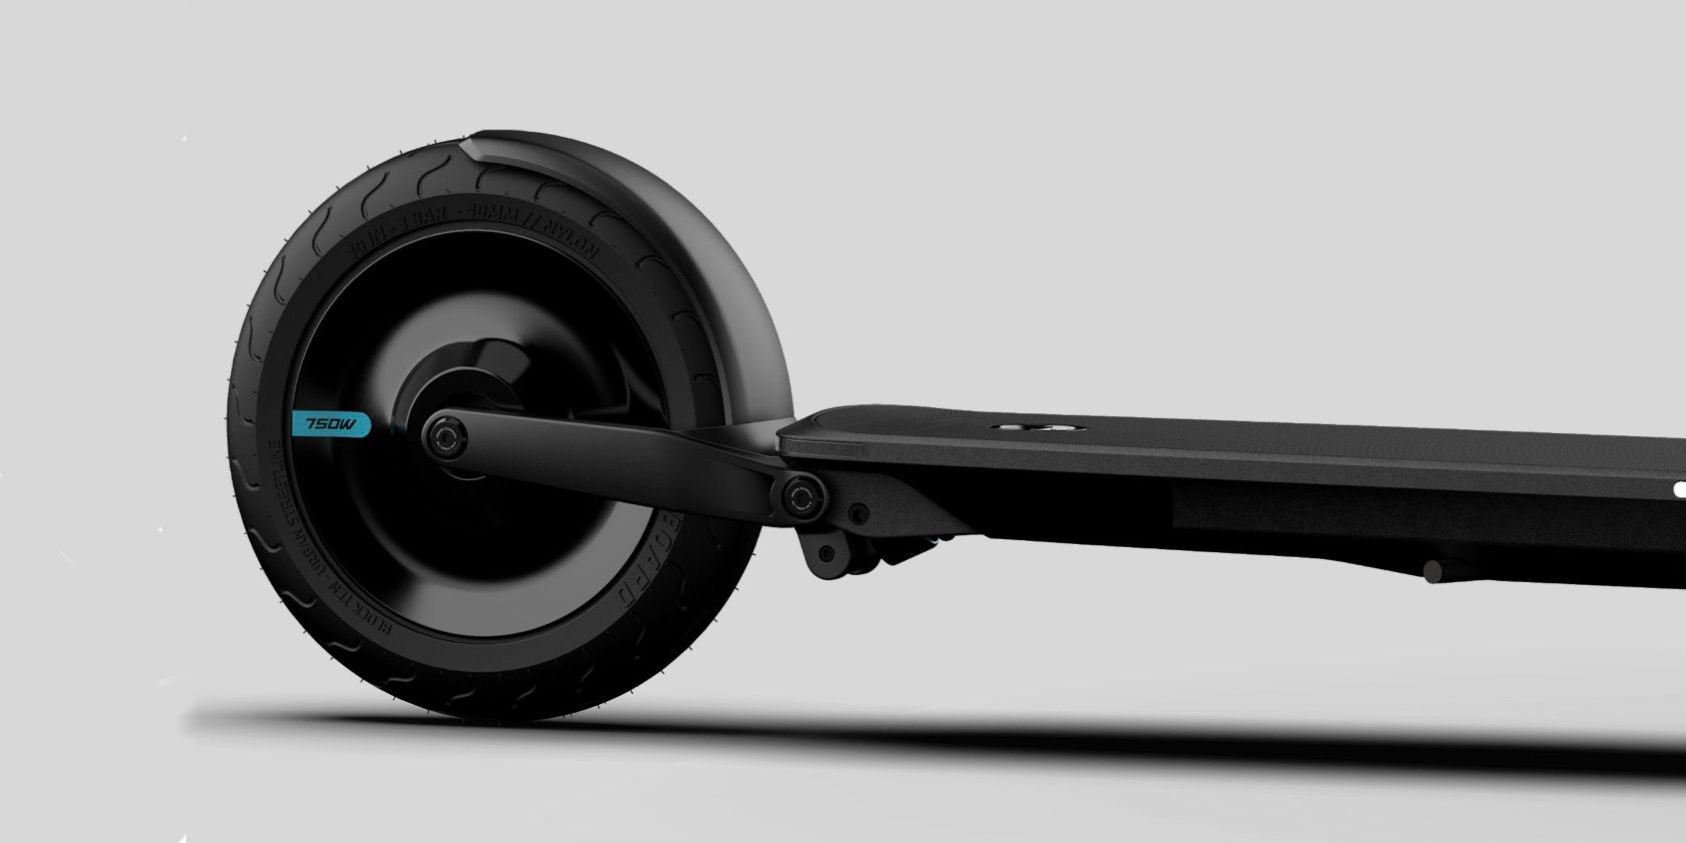 Inboard unveils their new 750W electric scooter and takes aim at scooter sharing